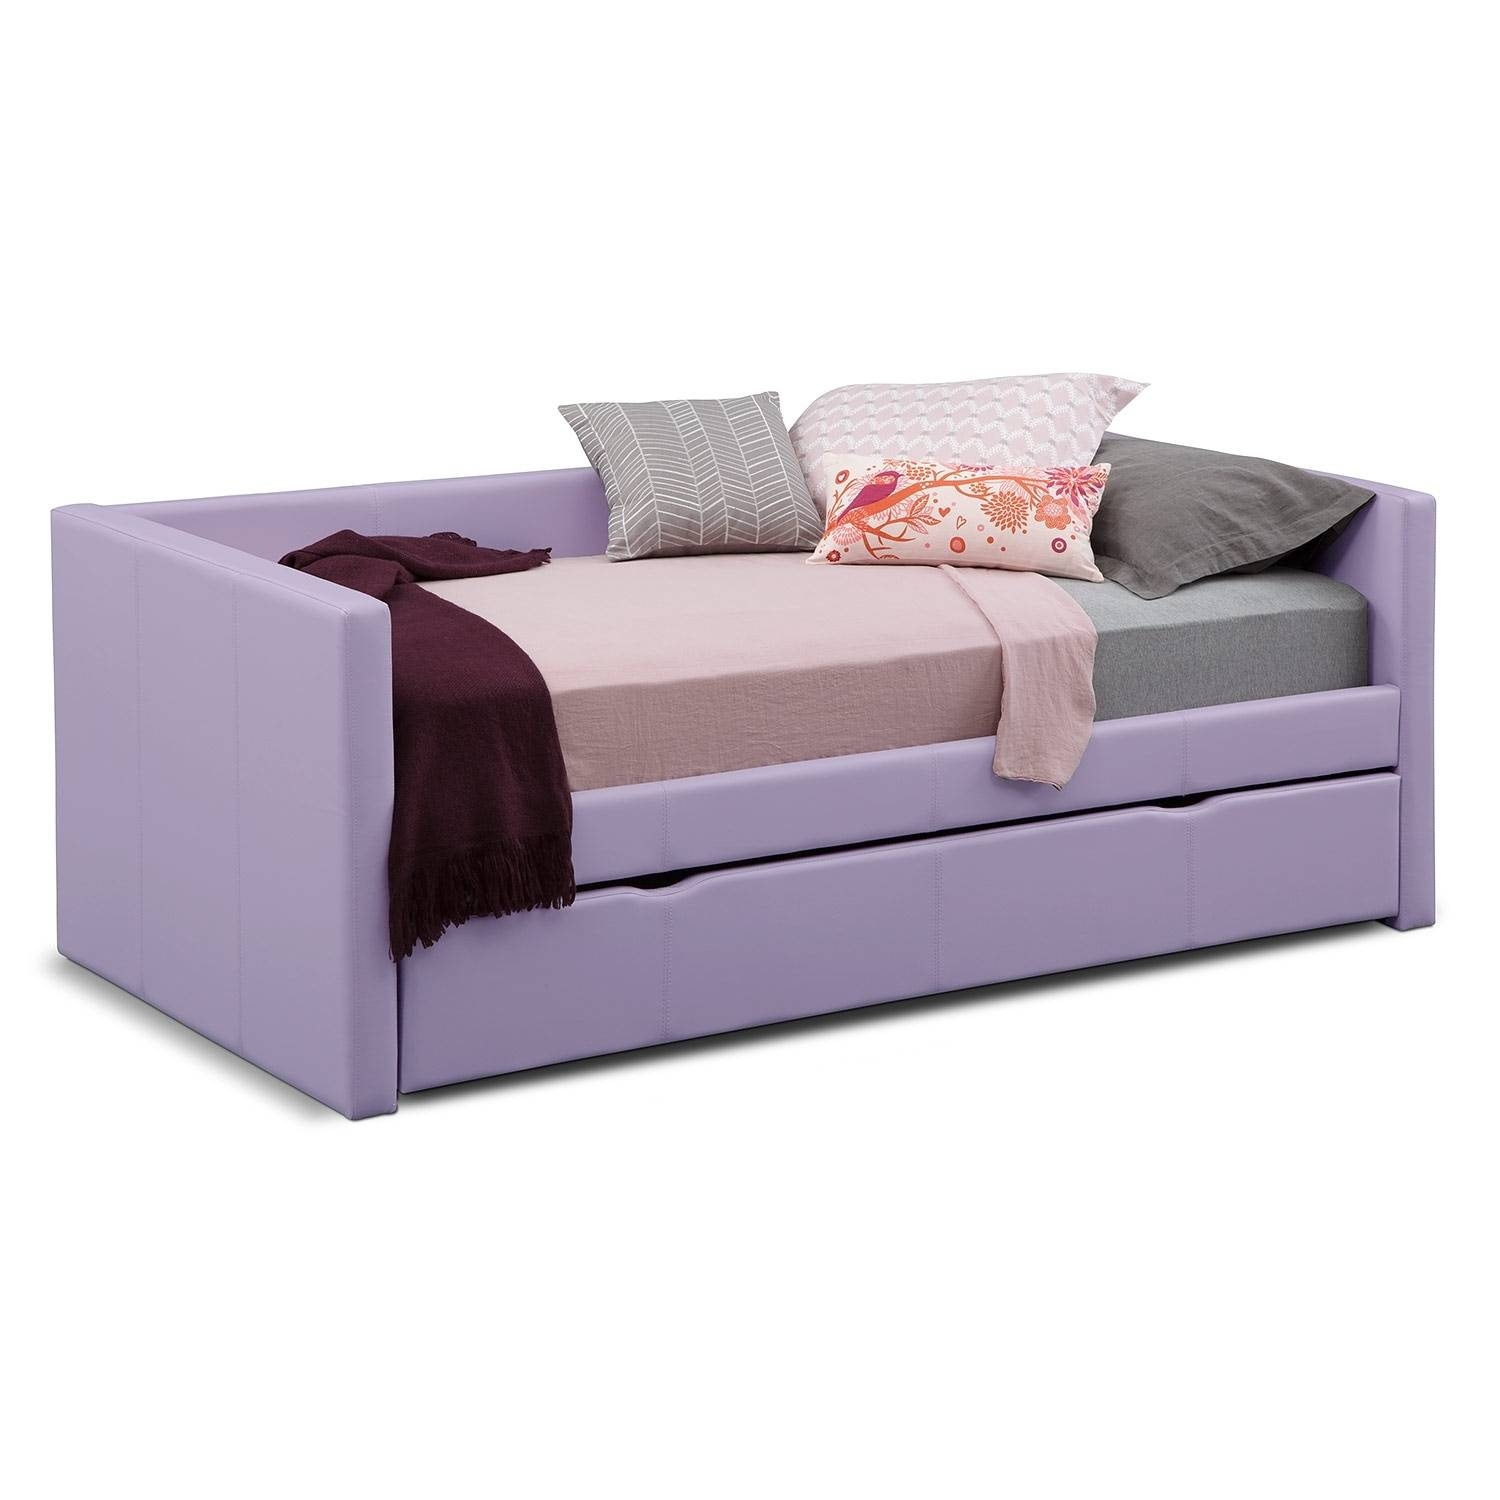 Daybeds & Trundle Beds | Bedroom Furniture | Value City Furniture Intended For Sofa Day Beds (View 14 of 30)